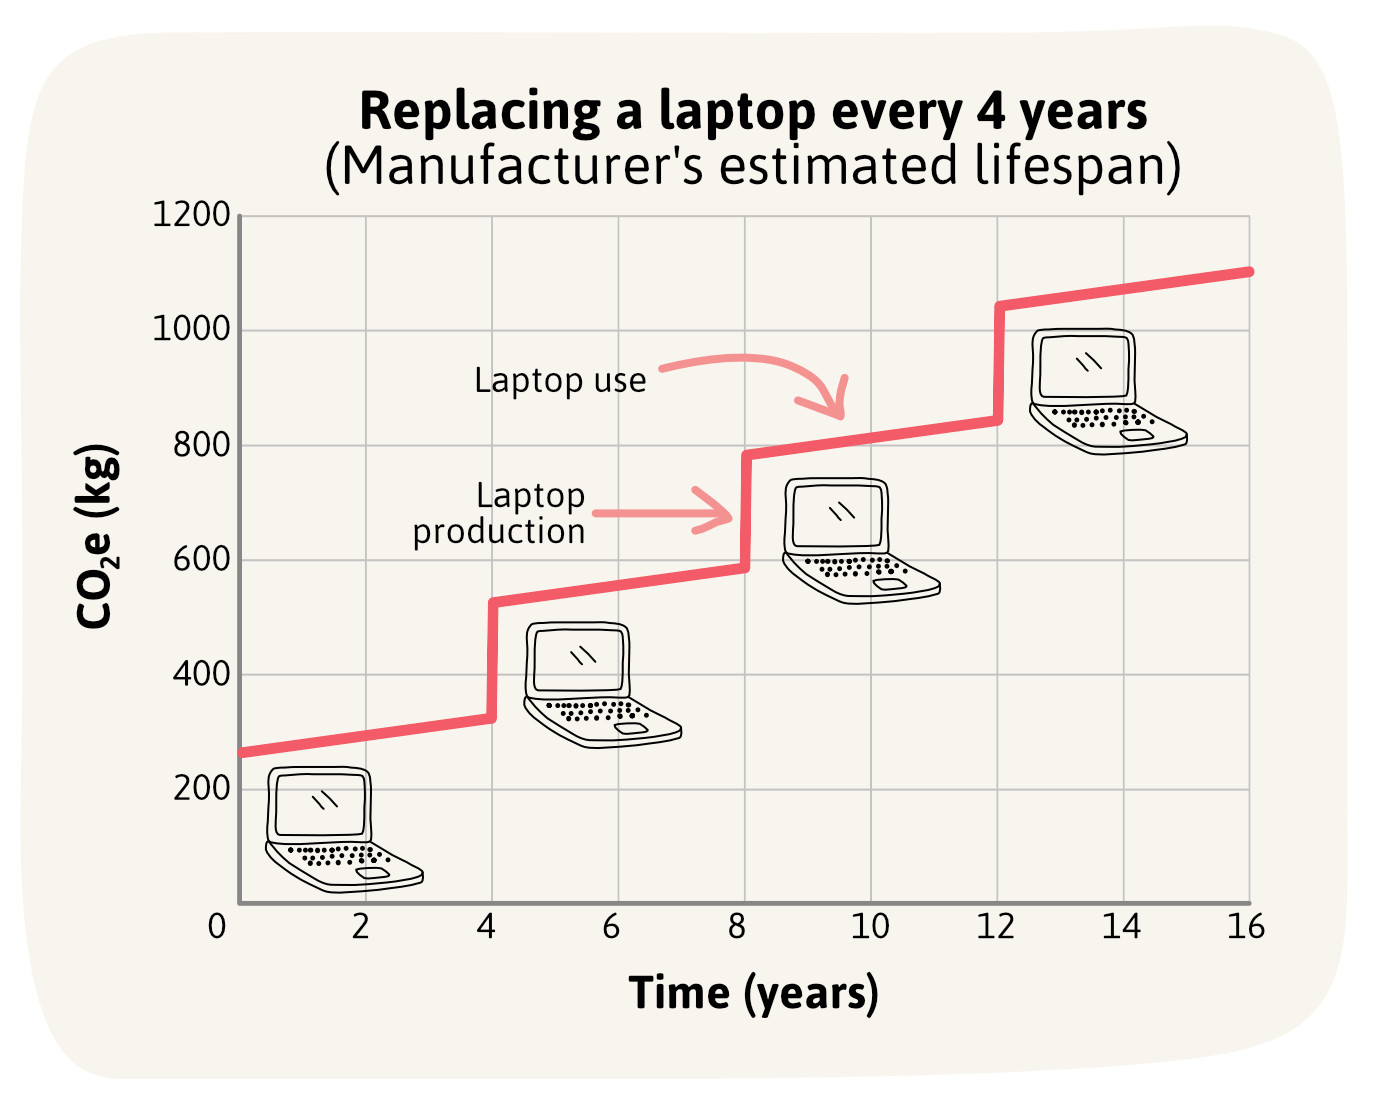 A graph showing the CO2e impact of replacing a laptop every 4 years